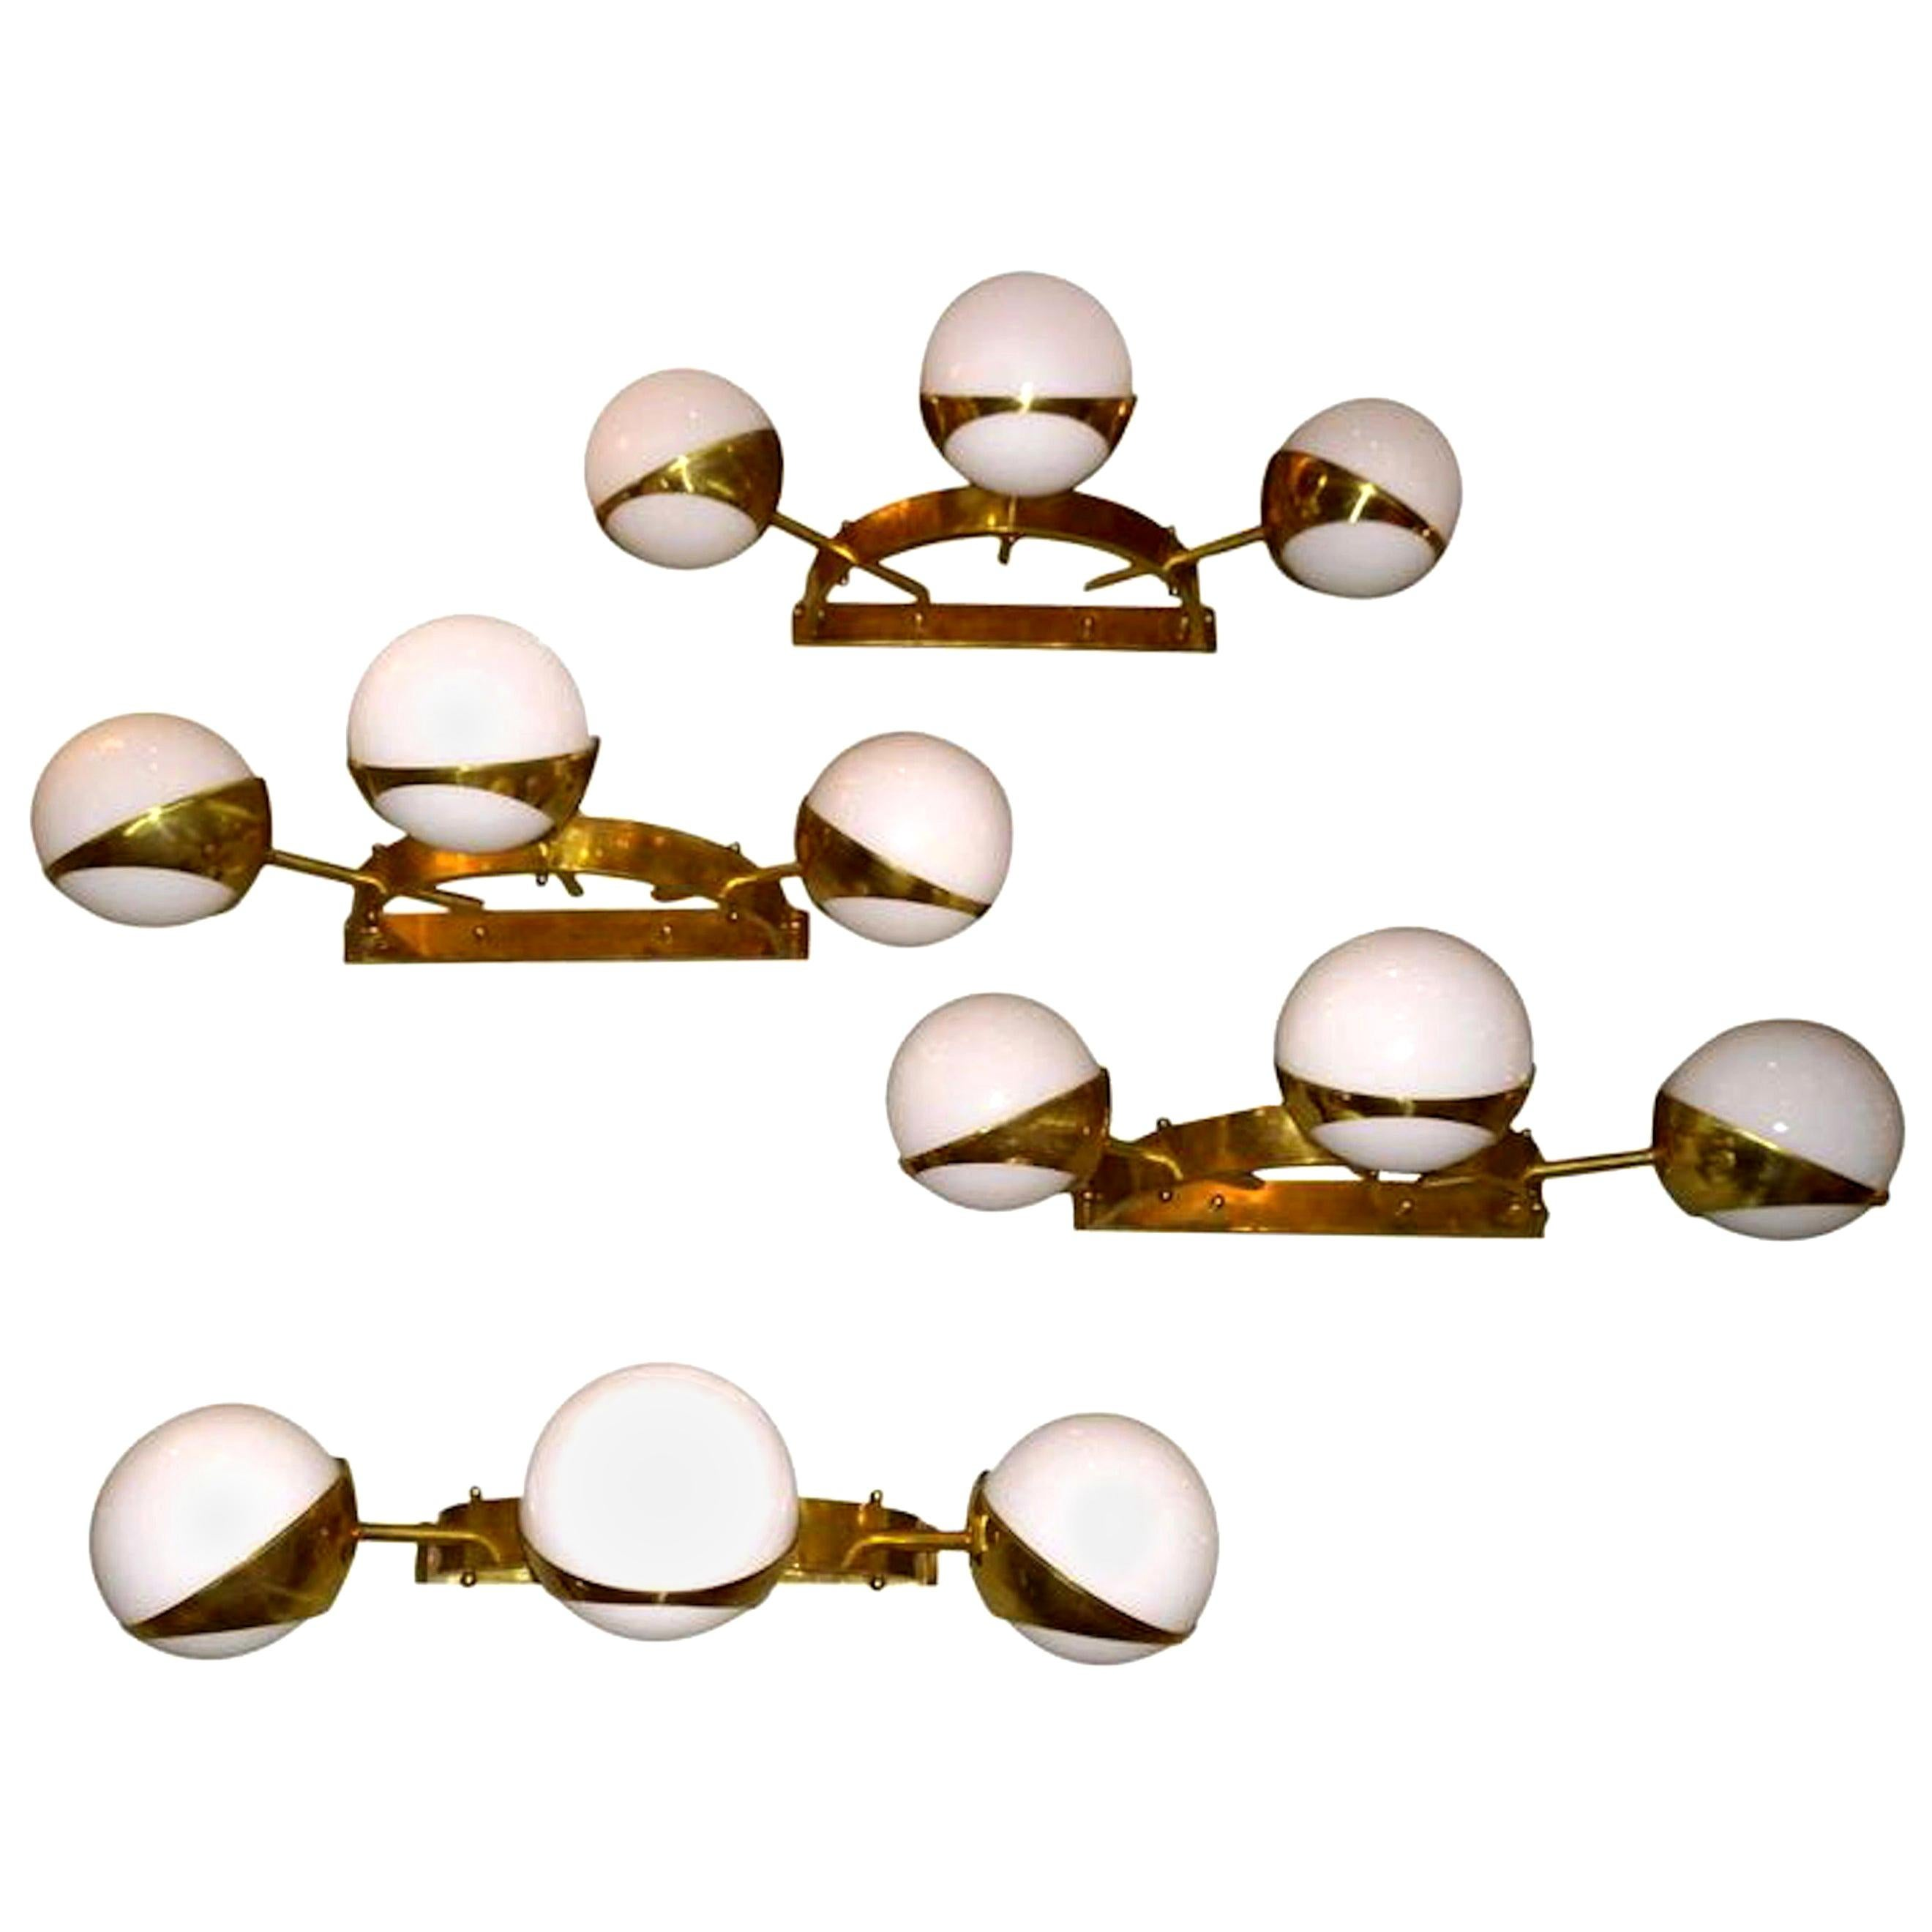 Two Pairs of White Glass Balls and Brass Sconces, Attributed to Stilnovo, 1960s